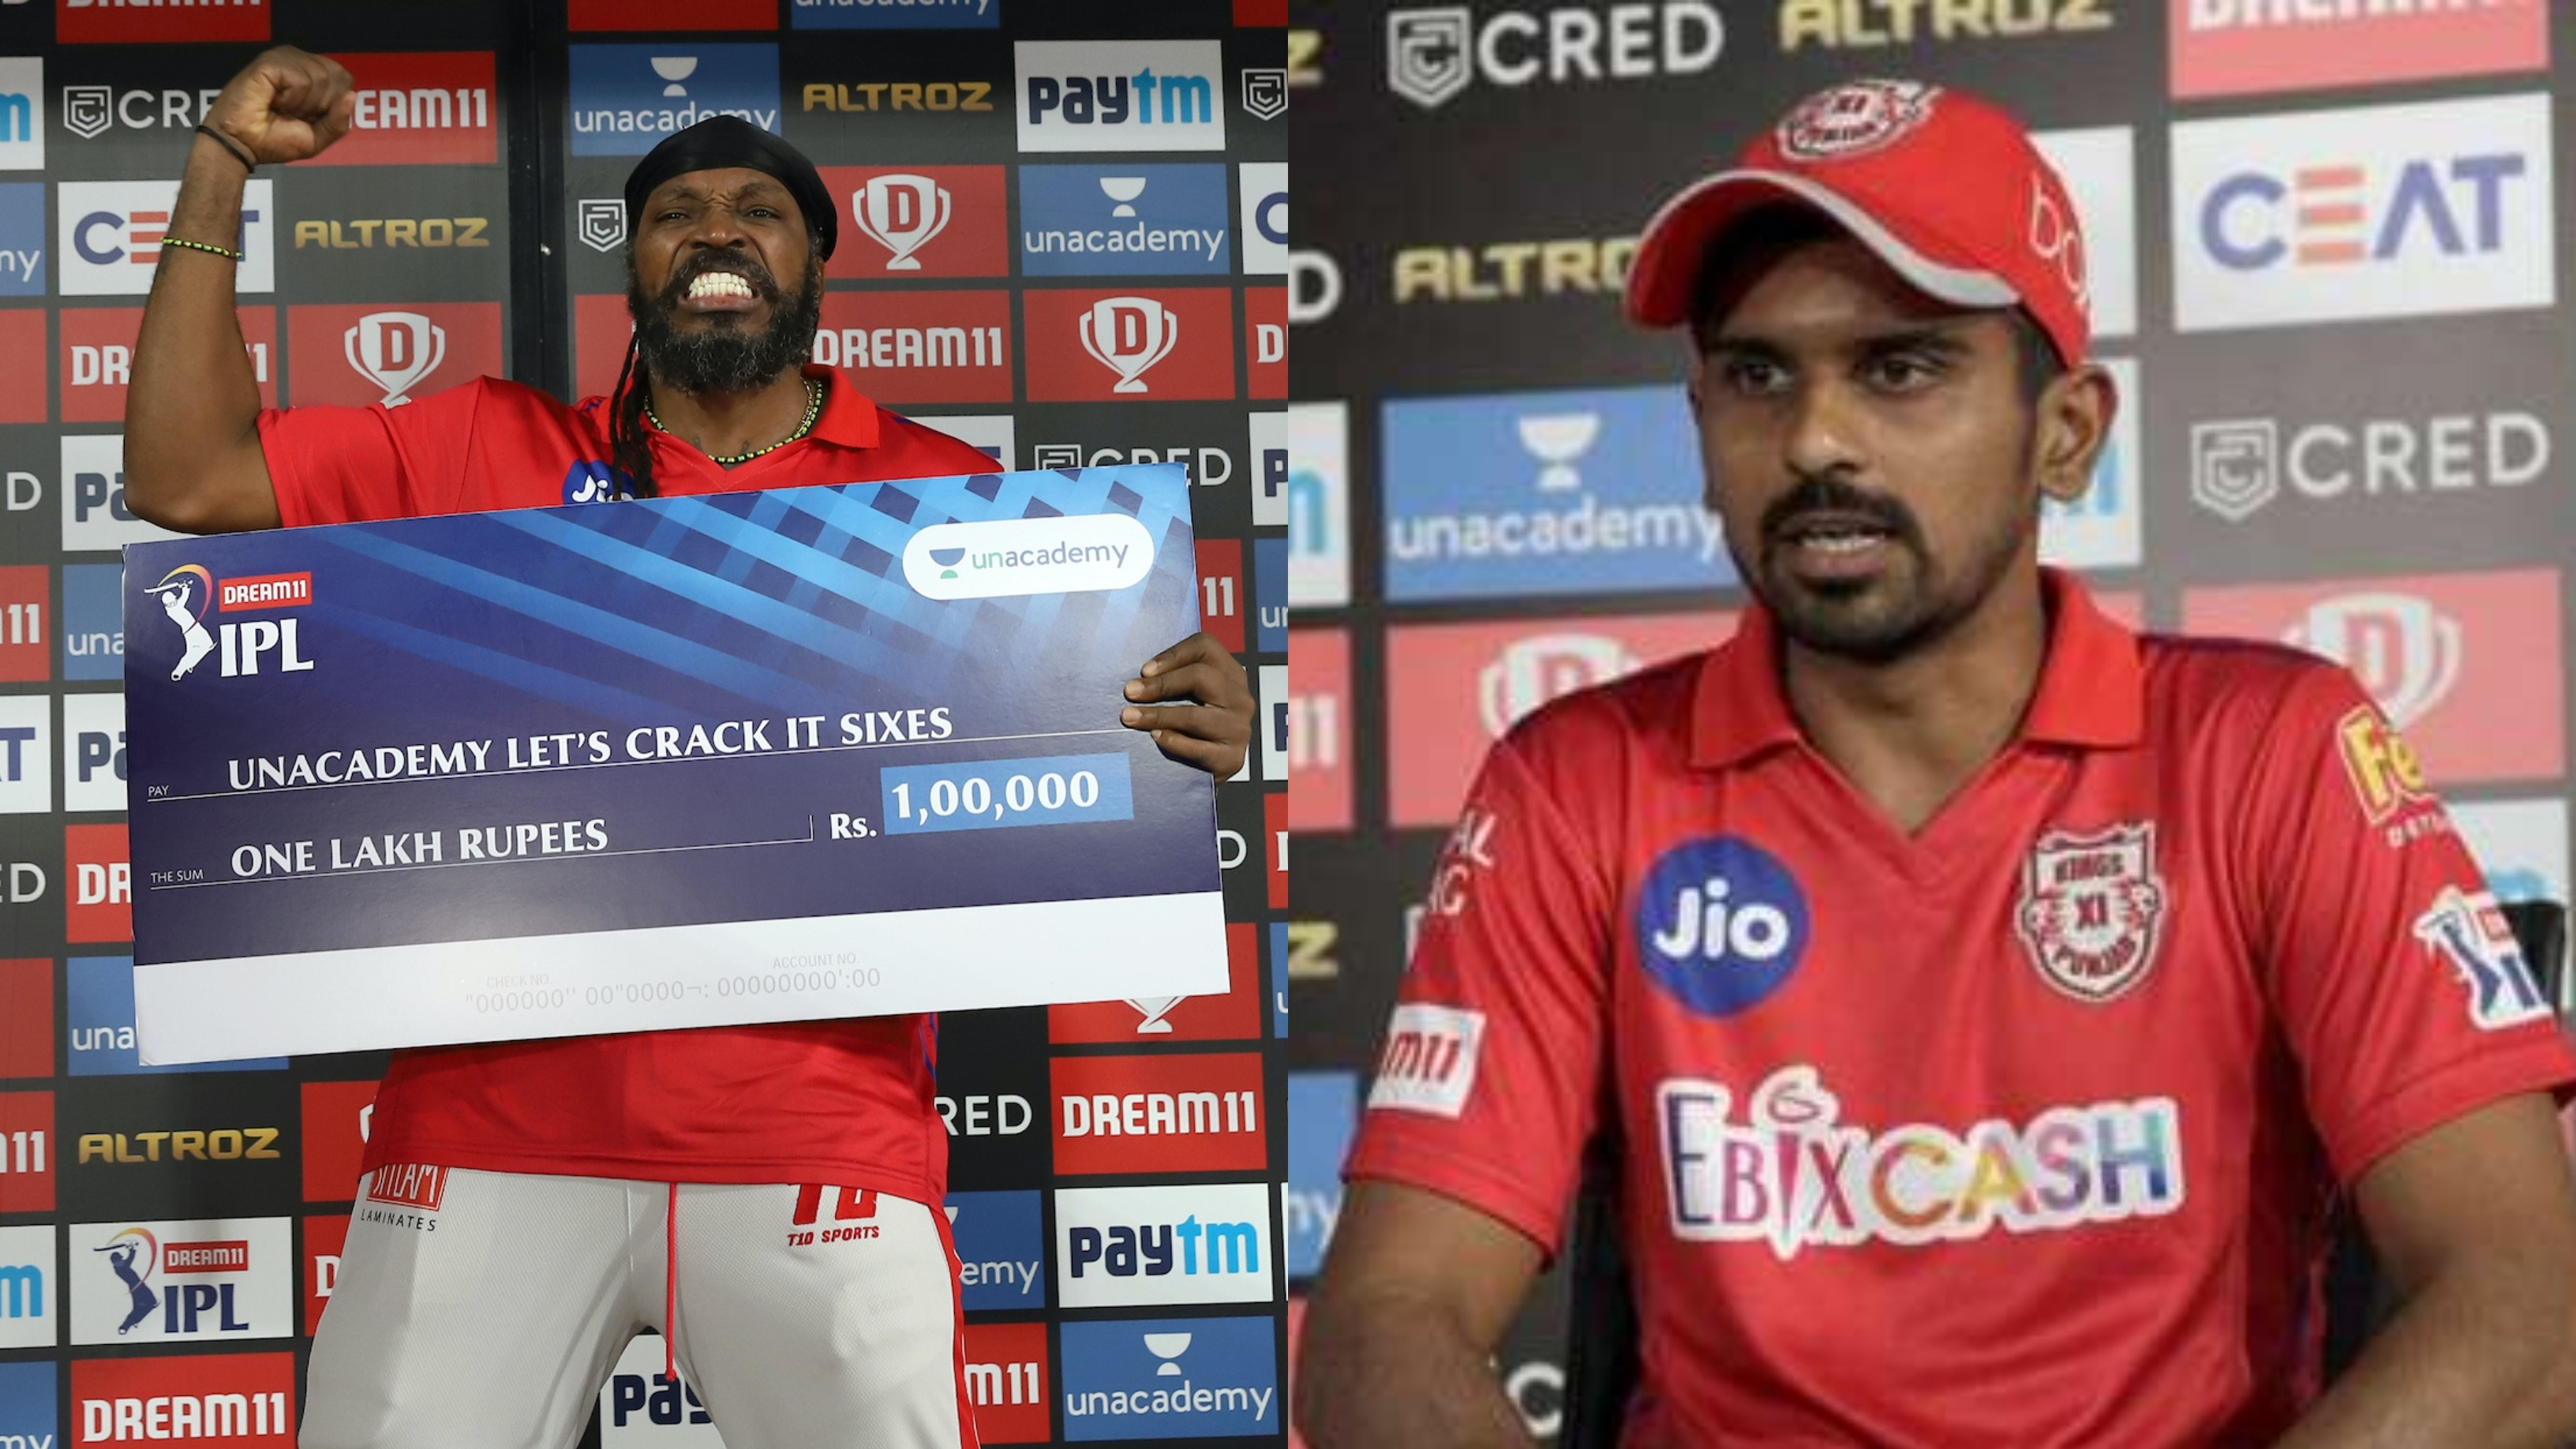 IPL 2020: Chris Gayle's return gives a lot of energy to Kings XI Punjab, says M Ashwin